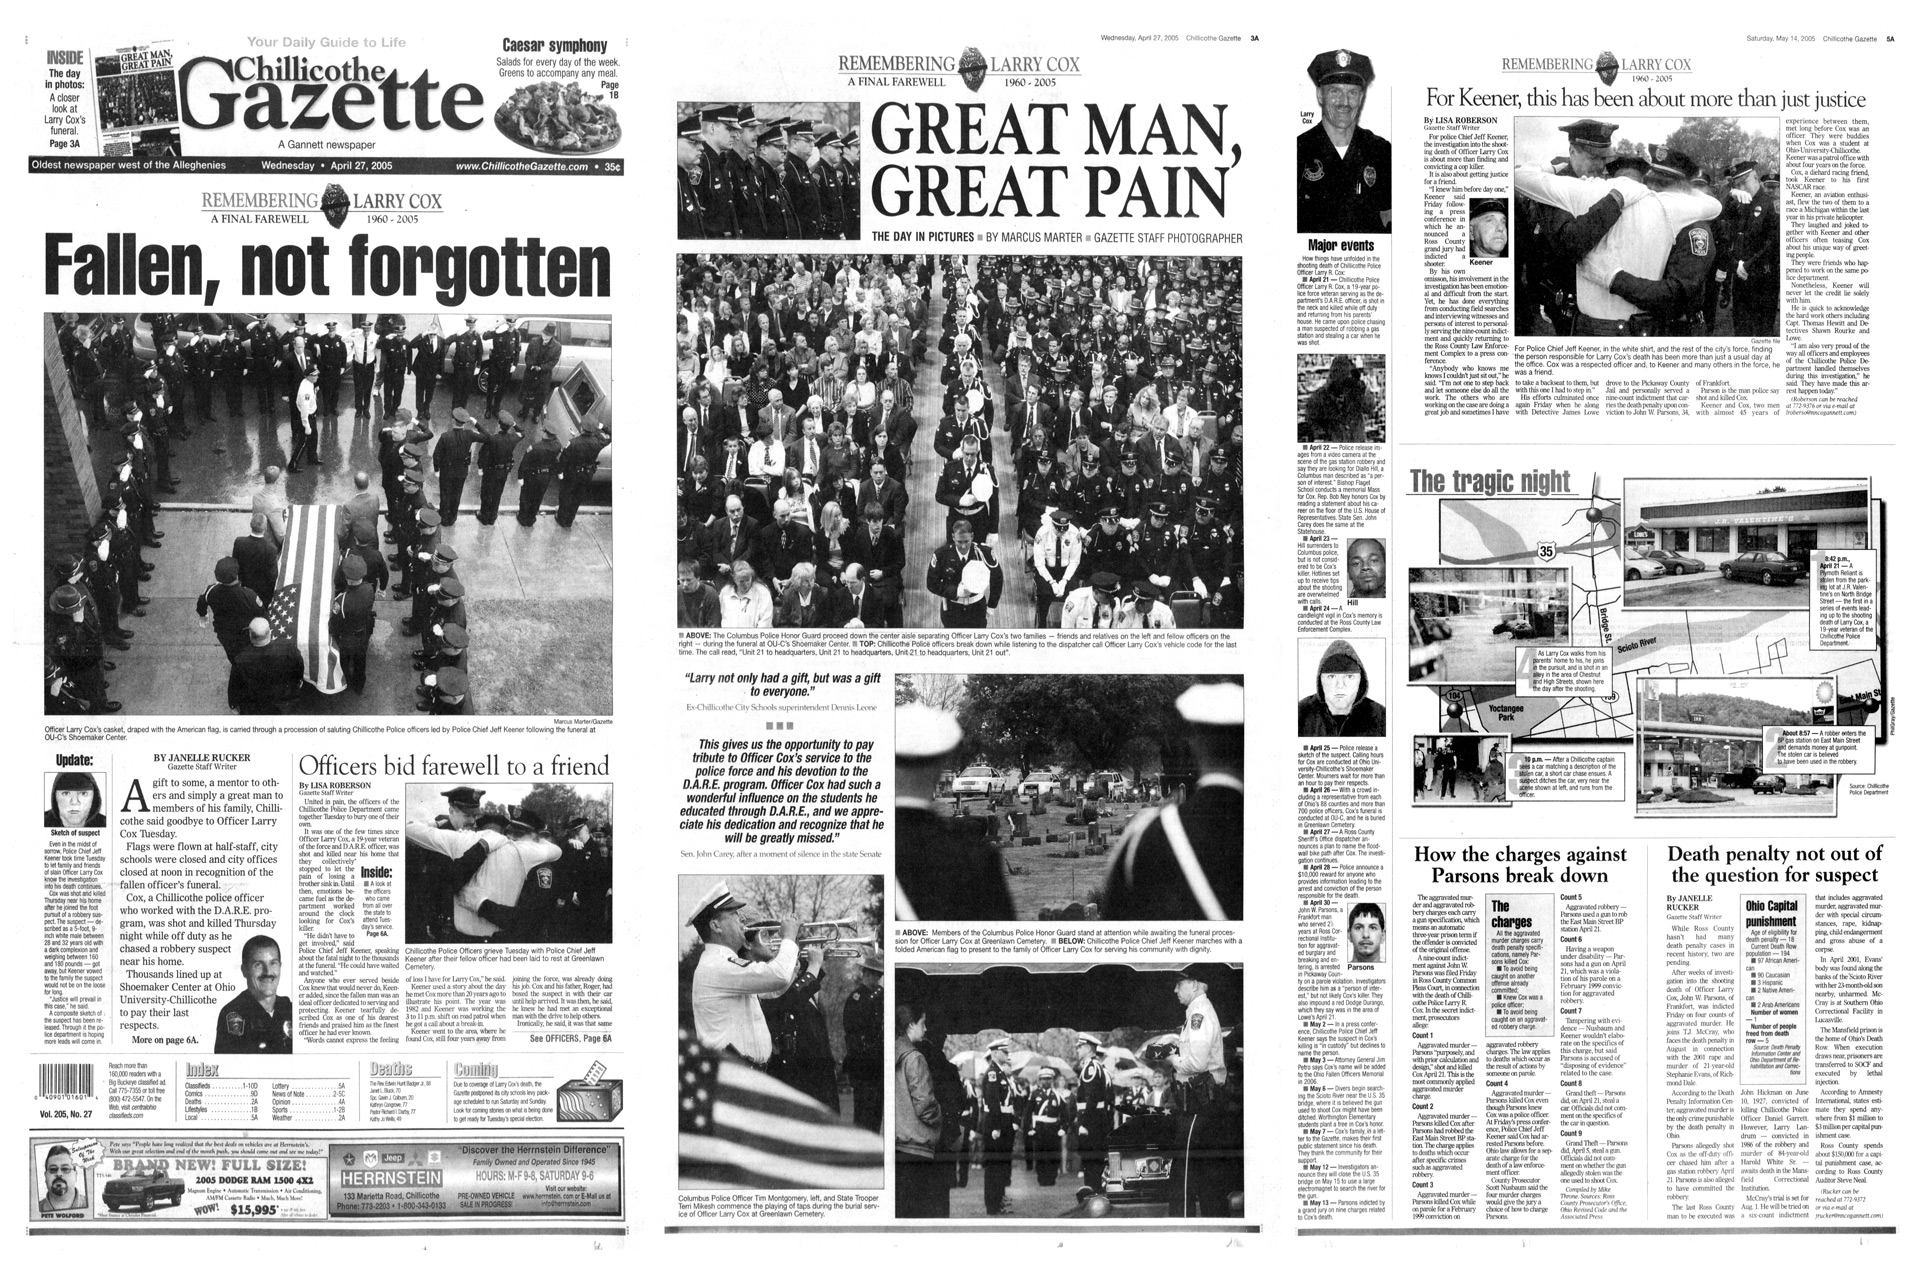 Several pages of coverage published following the shooting death of off-duty police officer Larry Cox, a well-known local figure and D.A.R.E. officer, in 2005.